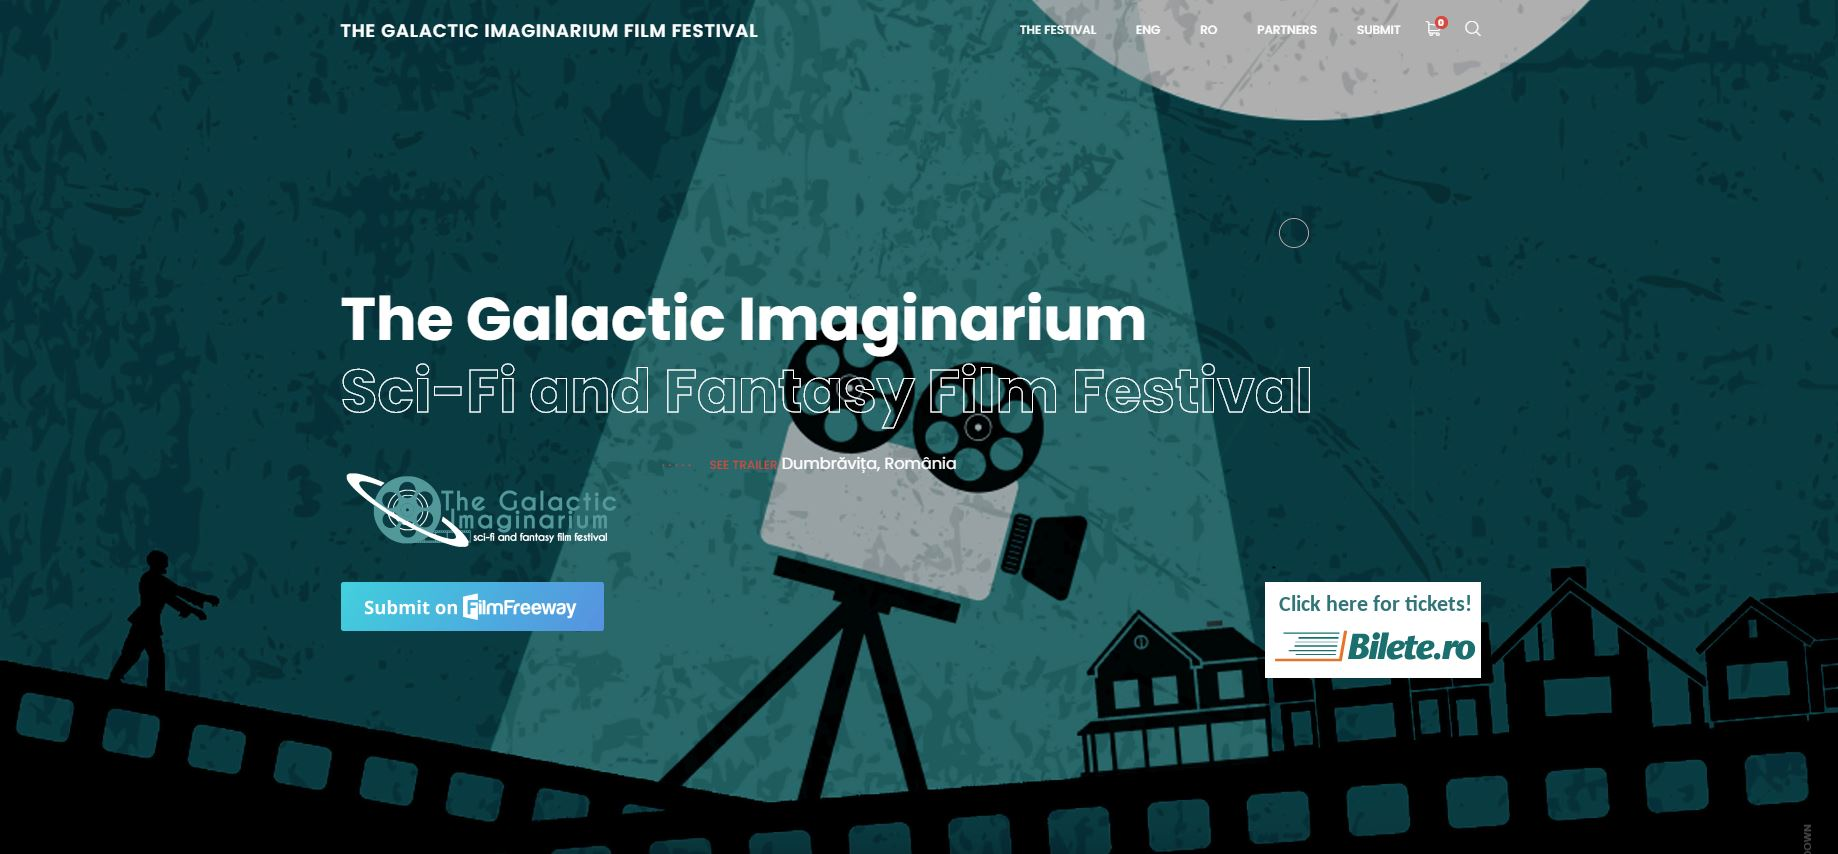 Screenshot from website. Apart from The Galactic Imaginarium Sci-Fi and Fantasy Film Festival there are some small logotypes and big picture. To the left there is a zombie. To the right there are a few houses and in the center there is a movie camera on a tripod.